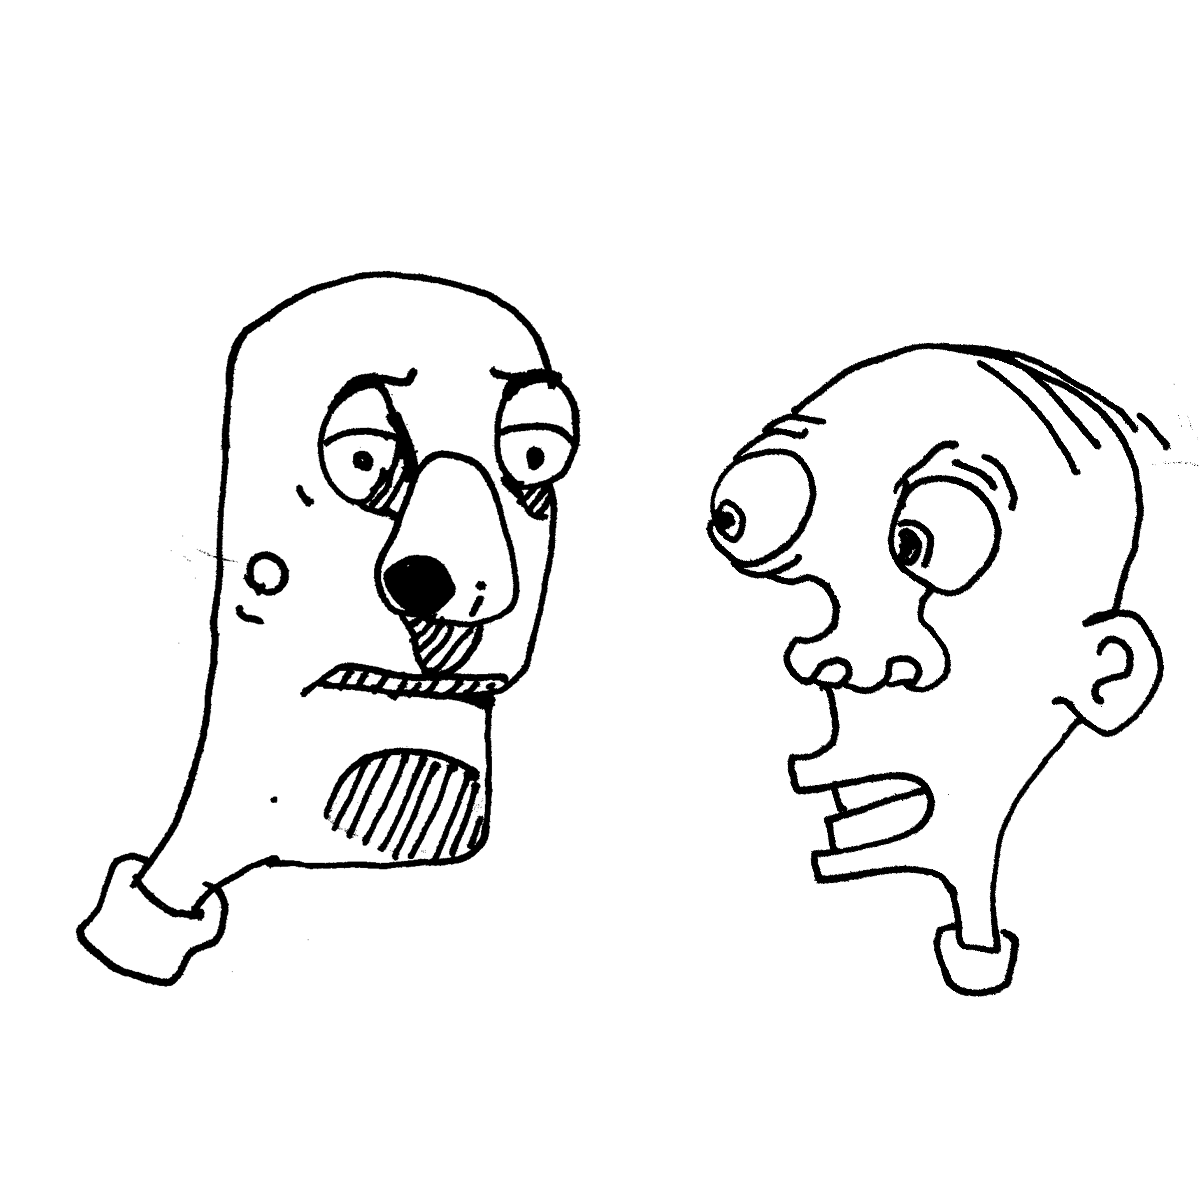 two heads cartoon doodle